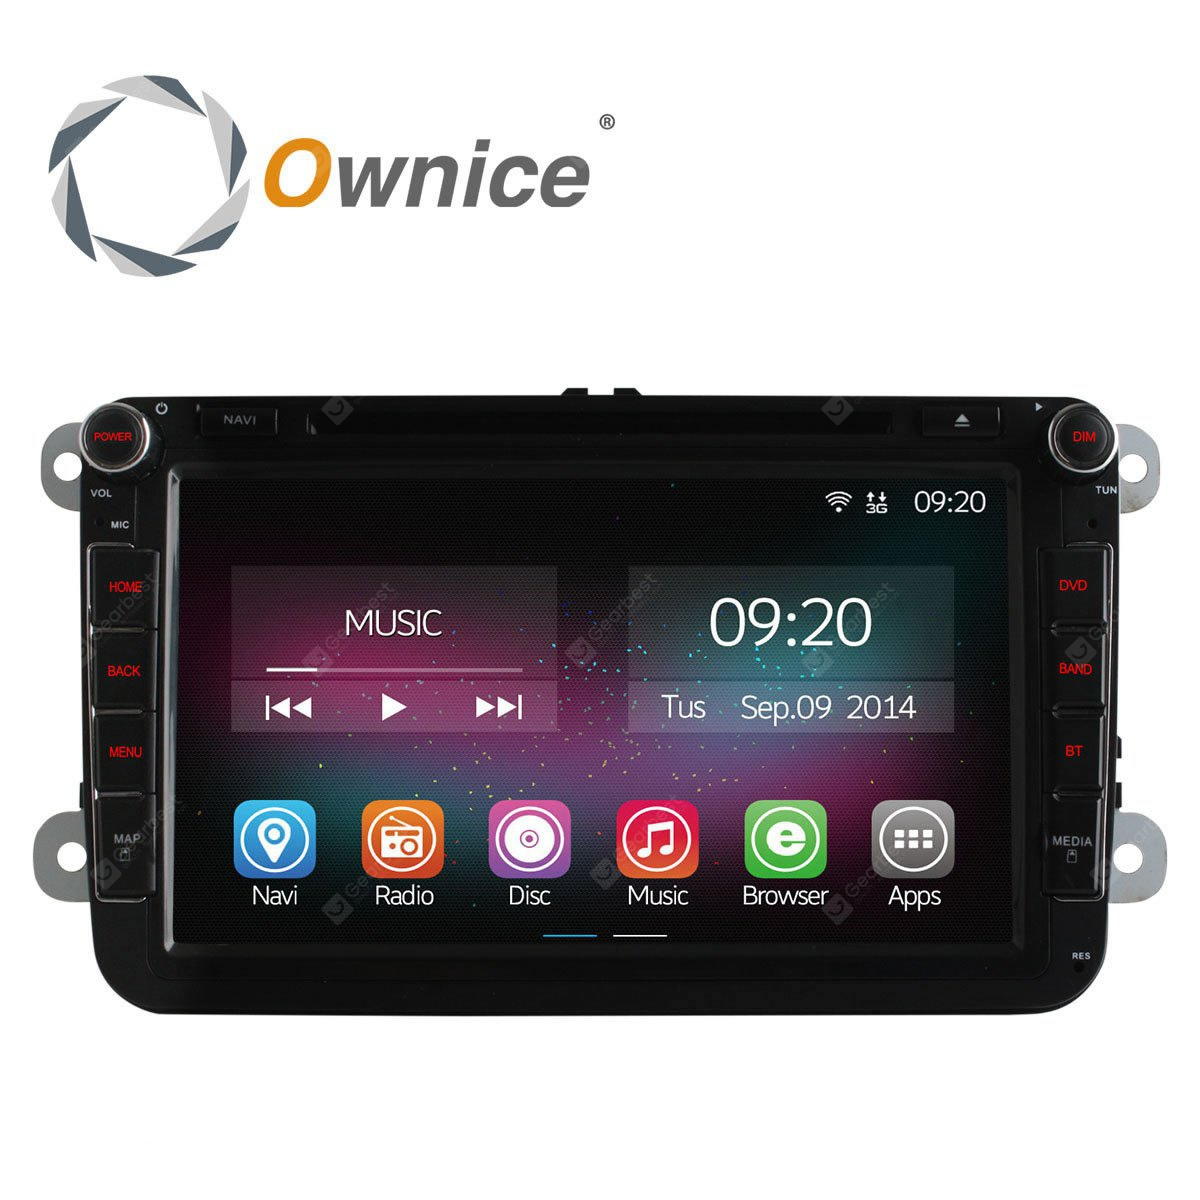 Ownice C200 OL 8901A Android 4.4.2 8.0 inch Car GPS DVD Multi-media Player